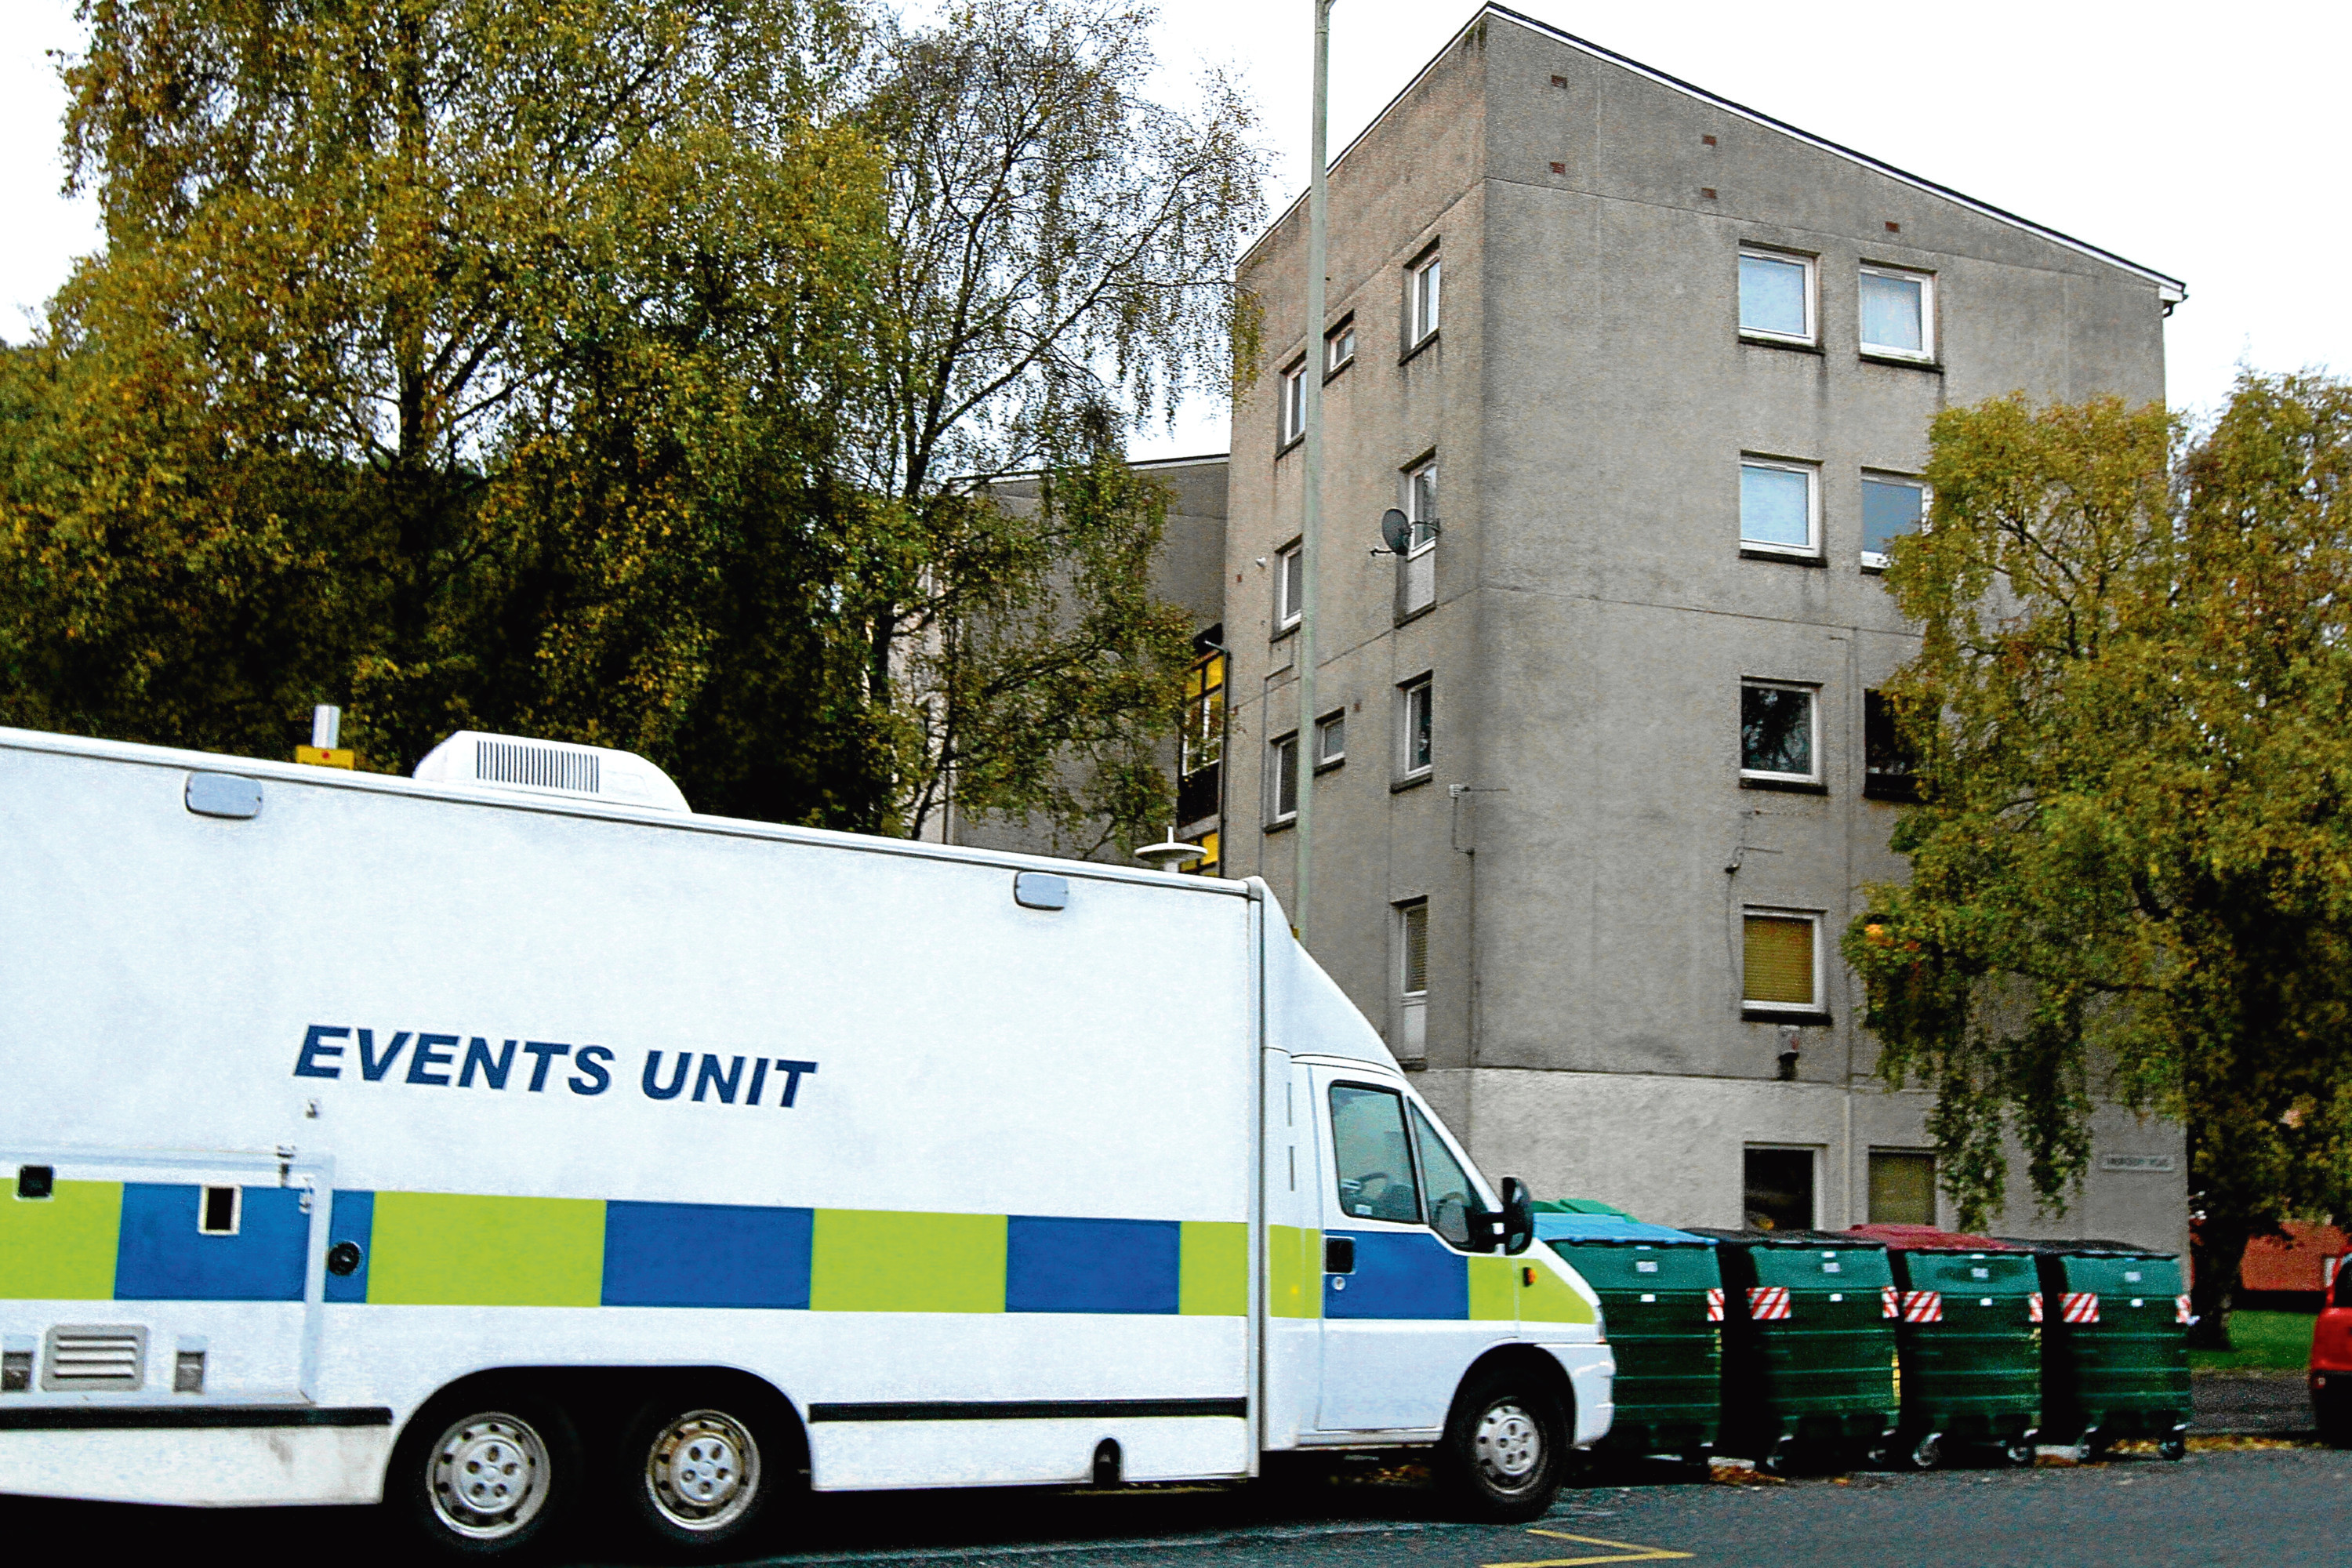 A police van at the scene at Nursery Road, Broughty Ferry.